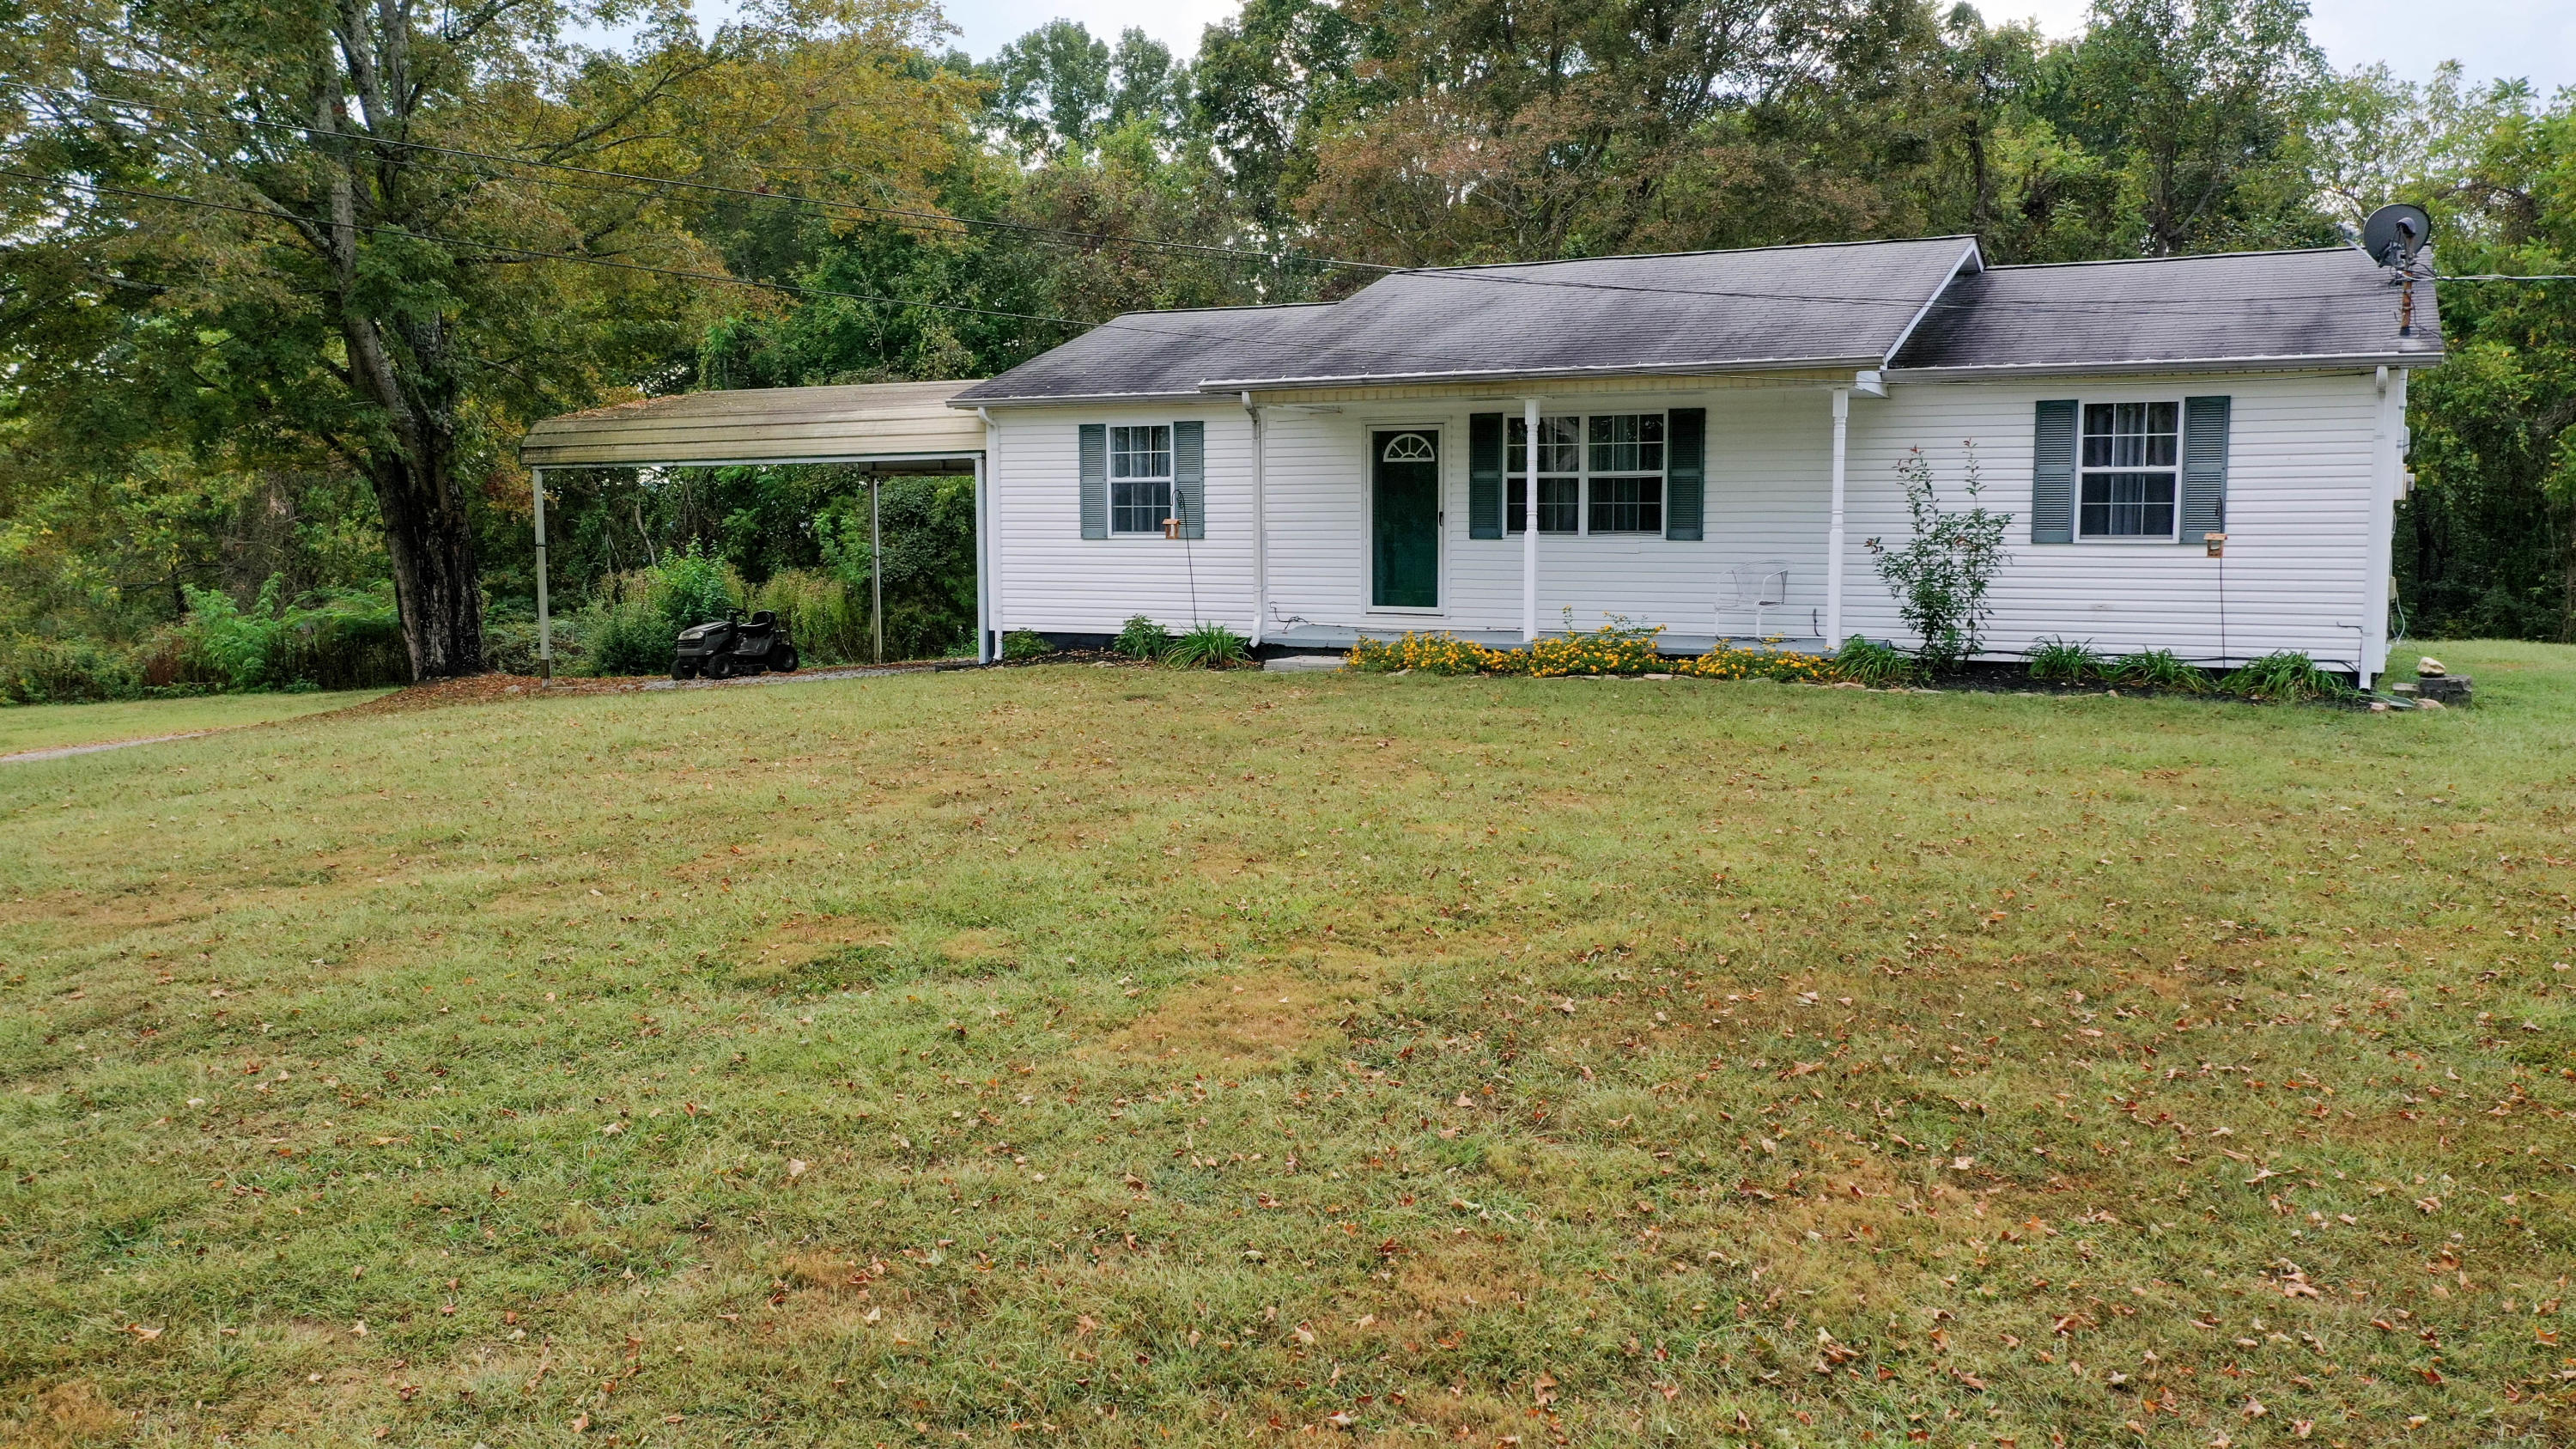 20190930232532087215000000-o Rocky Top anderson county homes for sale